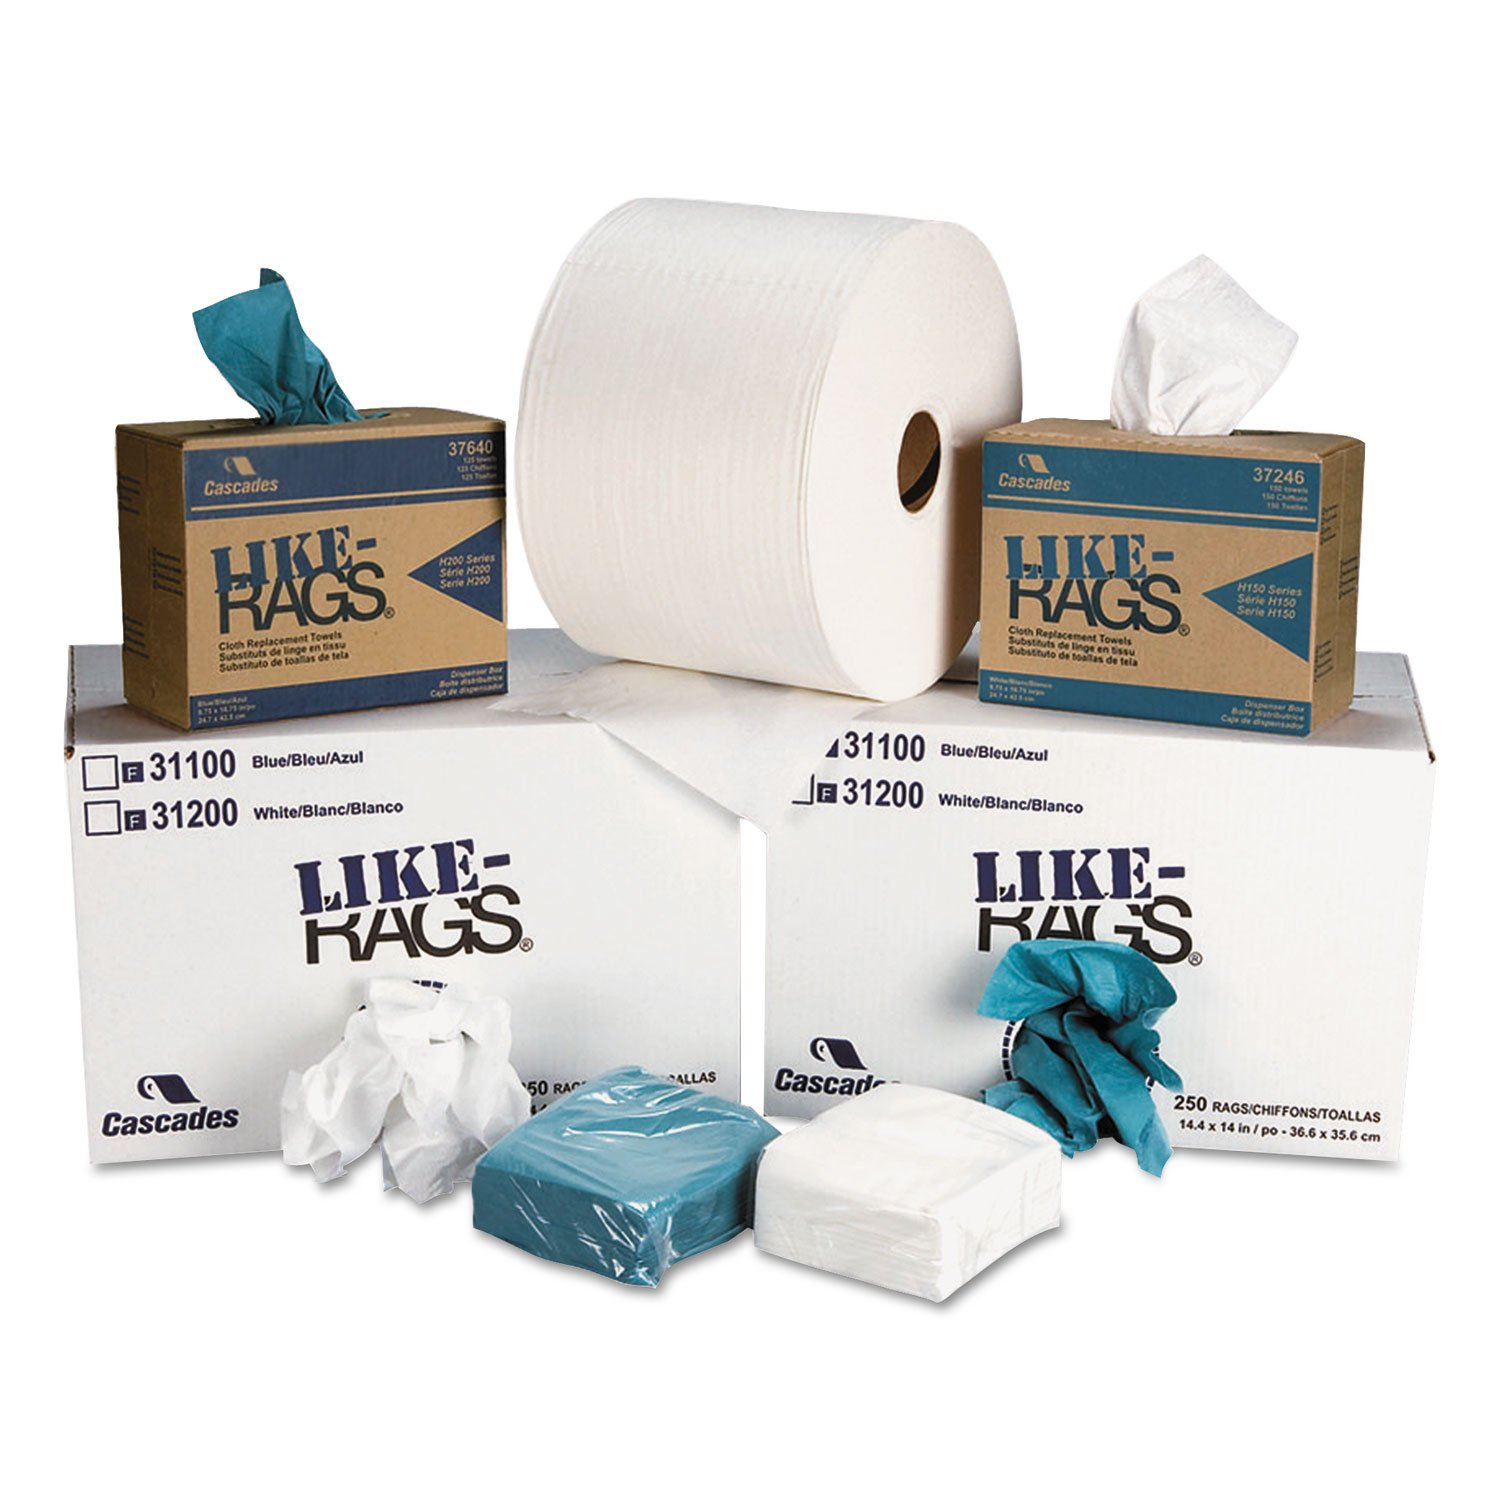 Amazon.com: Cascades 3333 Like-Rags Spunlace Towels, White, 9 1/4 X 12 1/2, 150/box, 9 Box/carton: Home & Kitchen